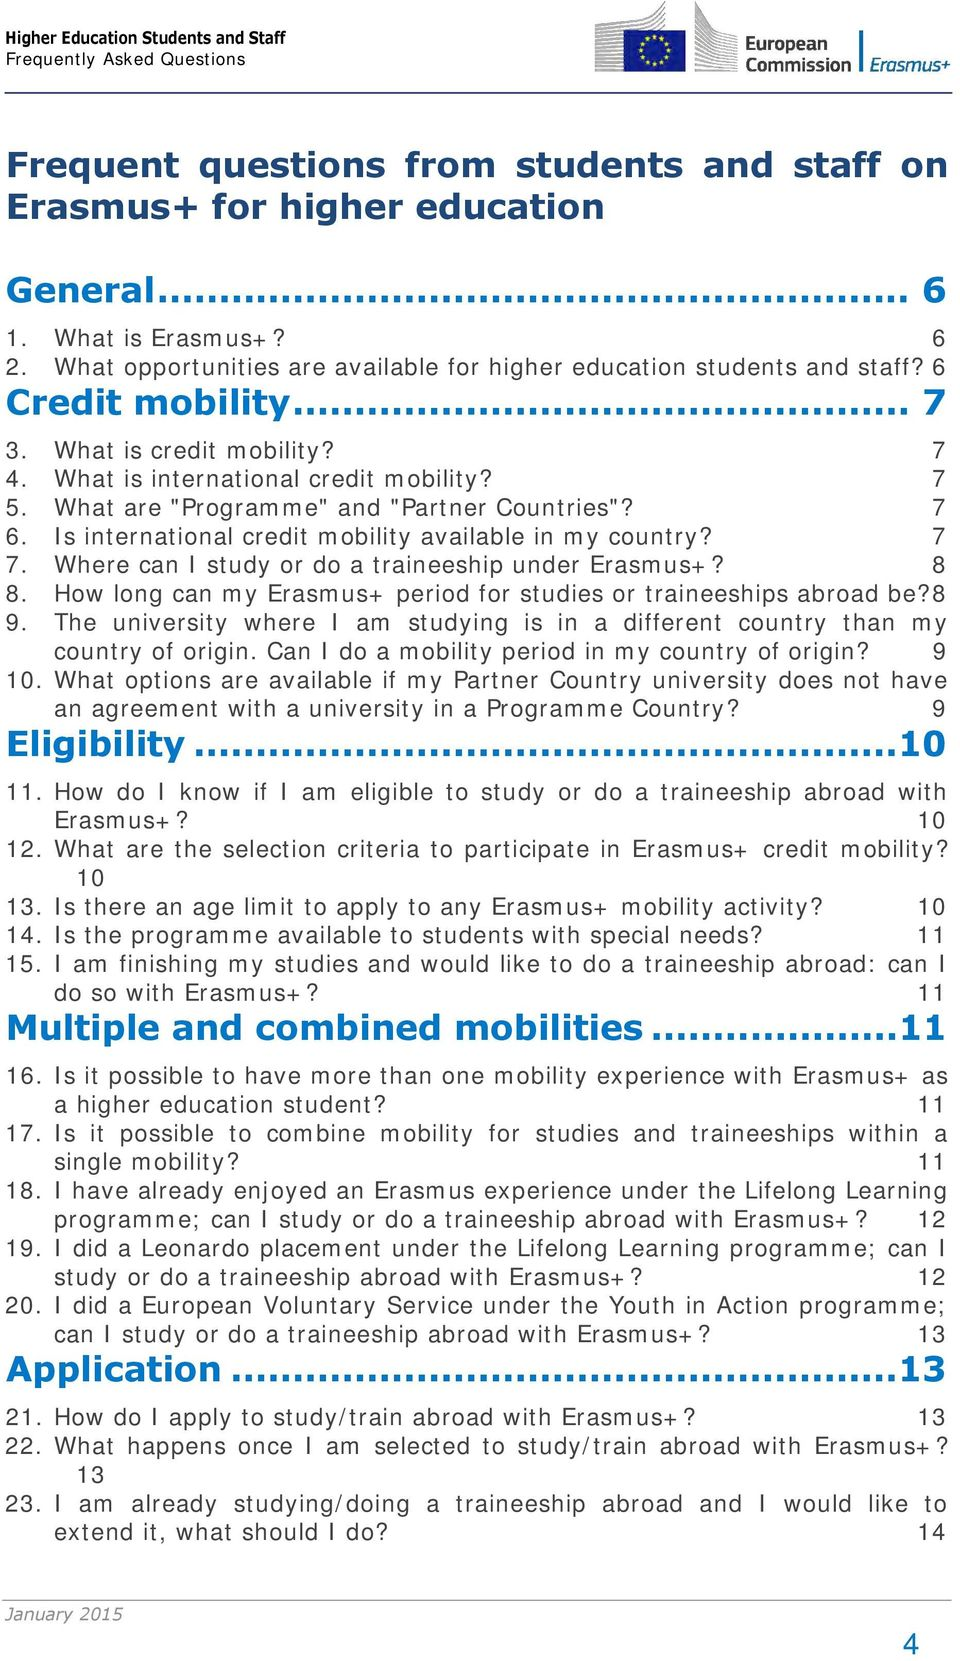 Is international credit mobility available in my country? 7 7. Where can I study or do a traineeship under Erasmus+? 8 8. How long can my Erasmus+ period for studies or traineeships abroad be? 8 9.